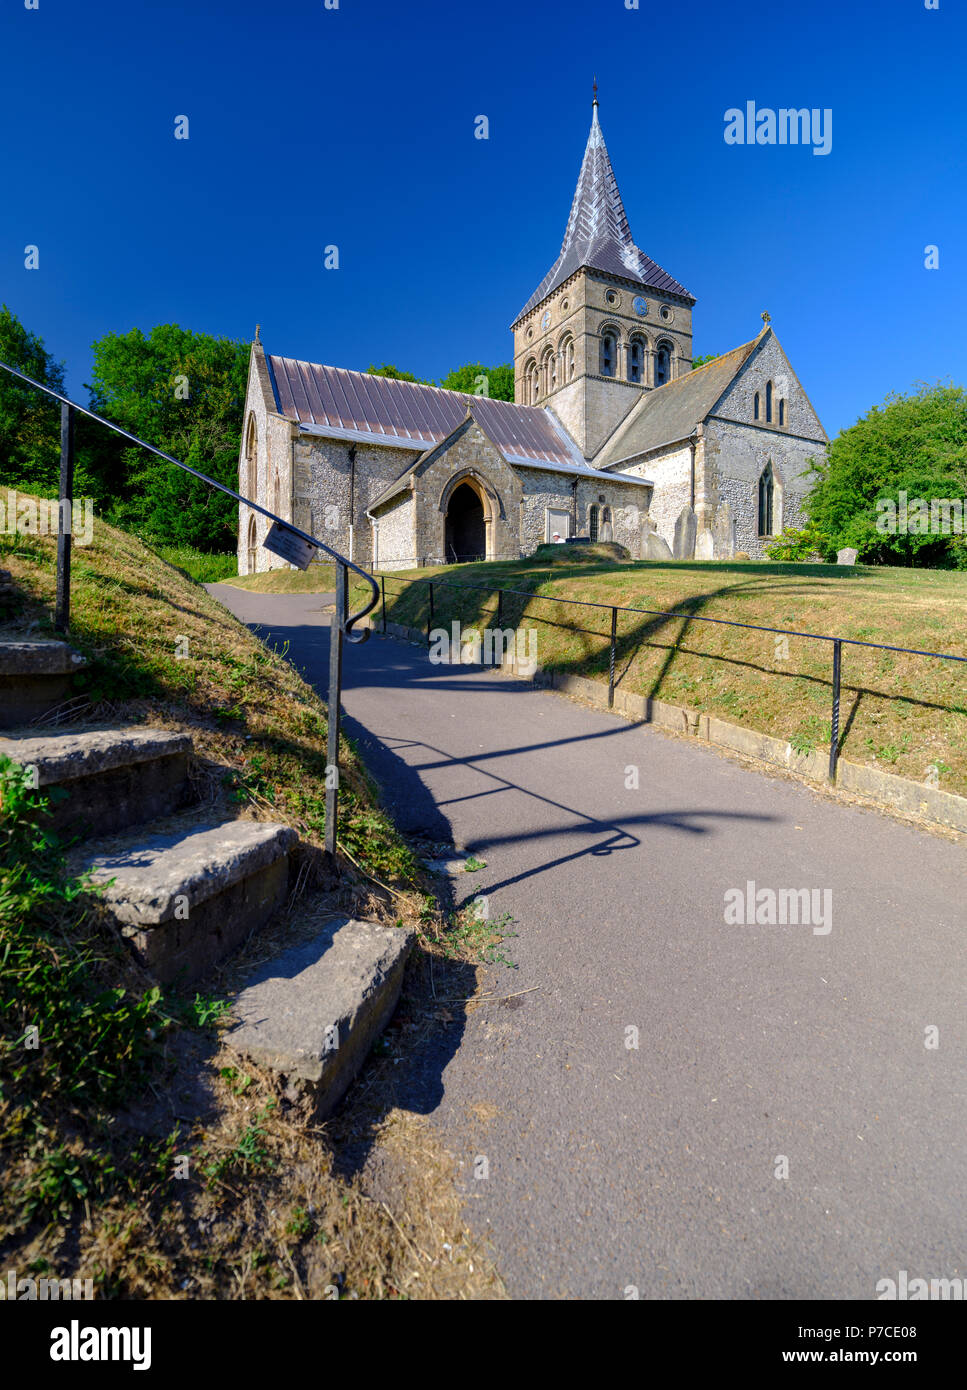 All Saints Church in East Meon, Hampshire, UK - Stock Image